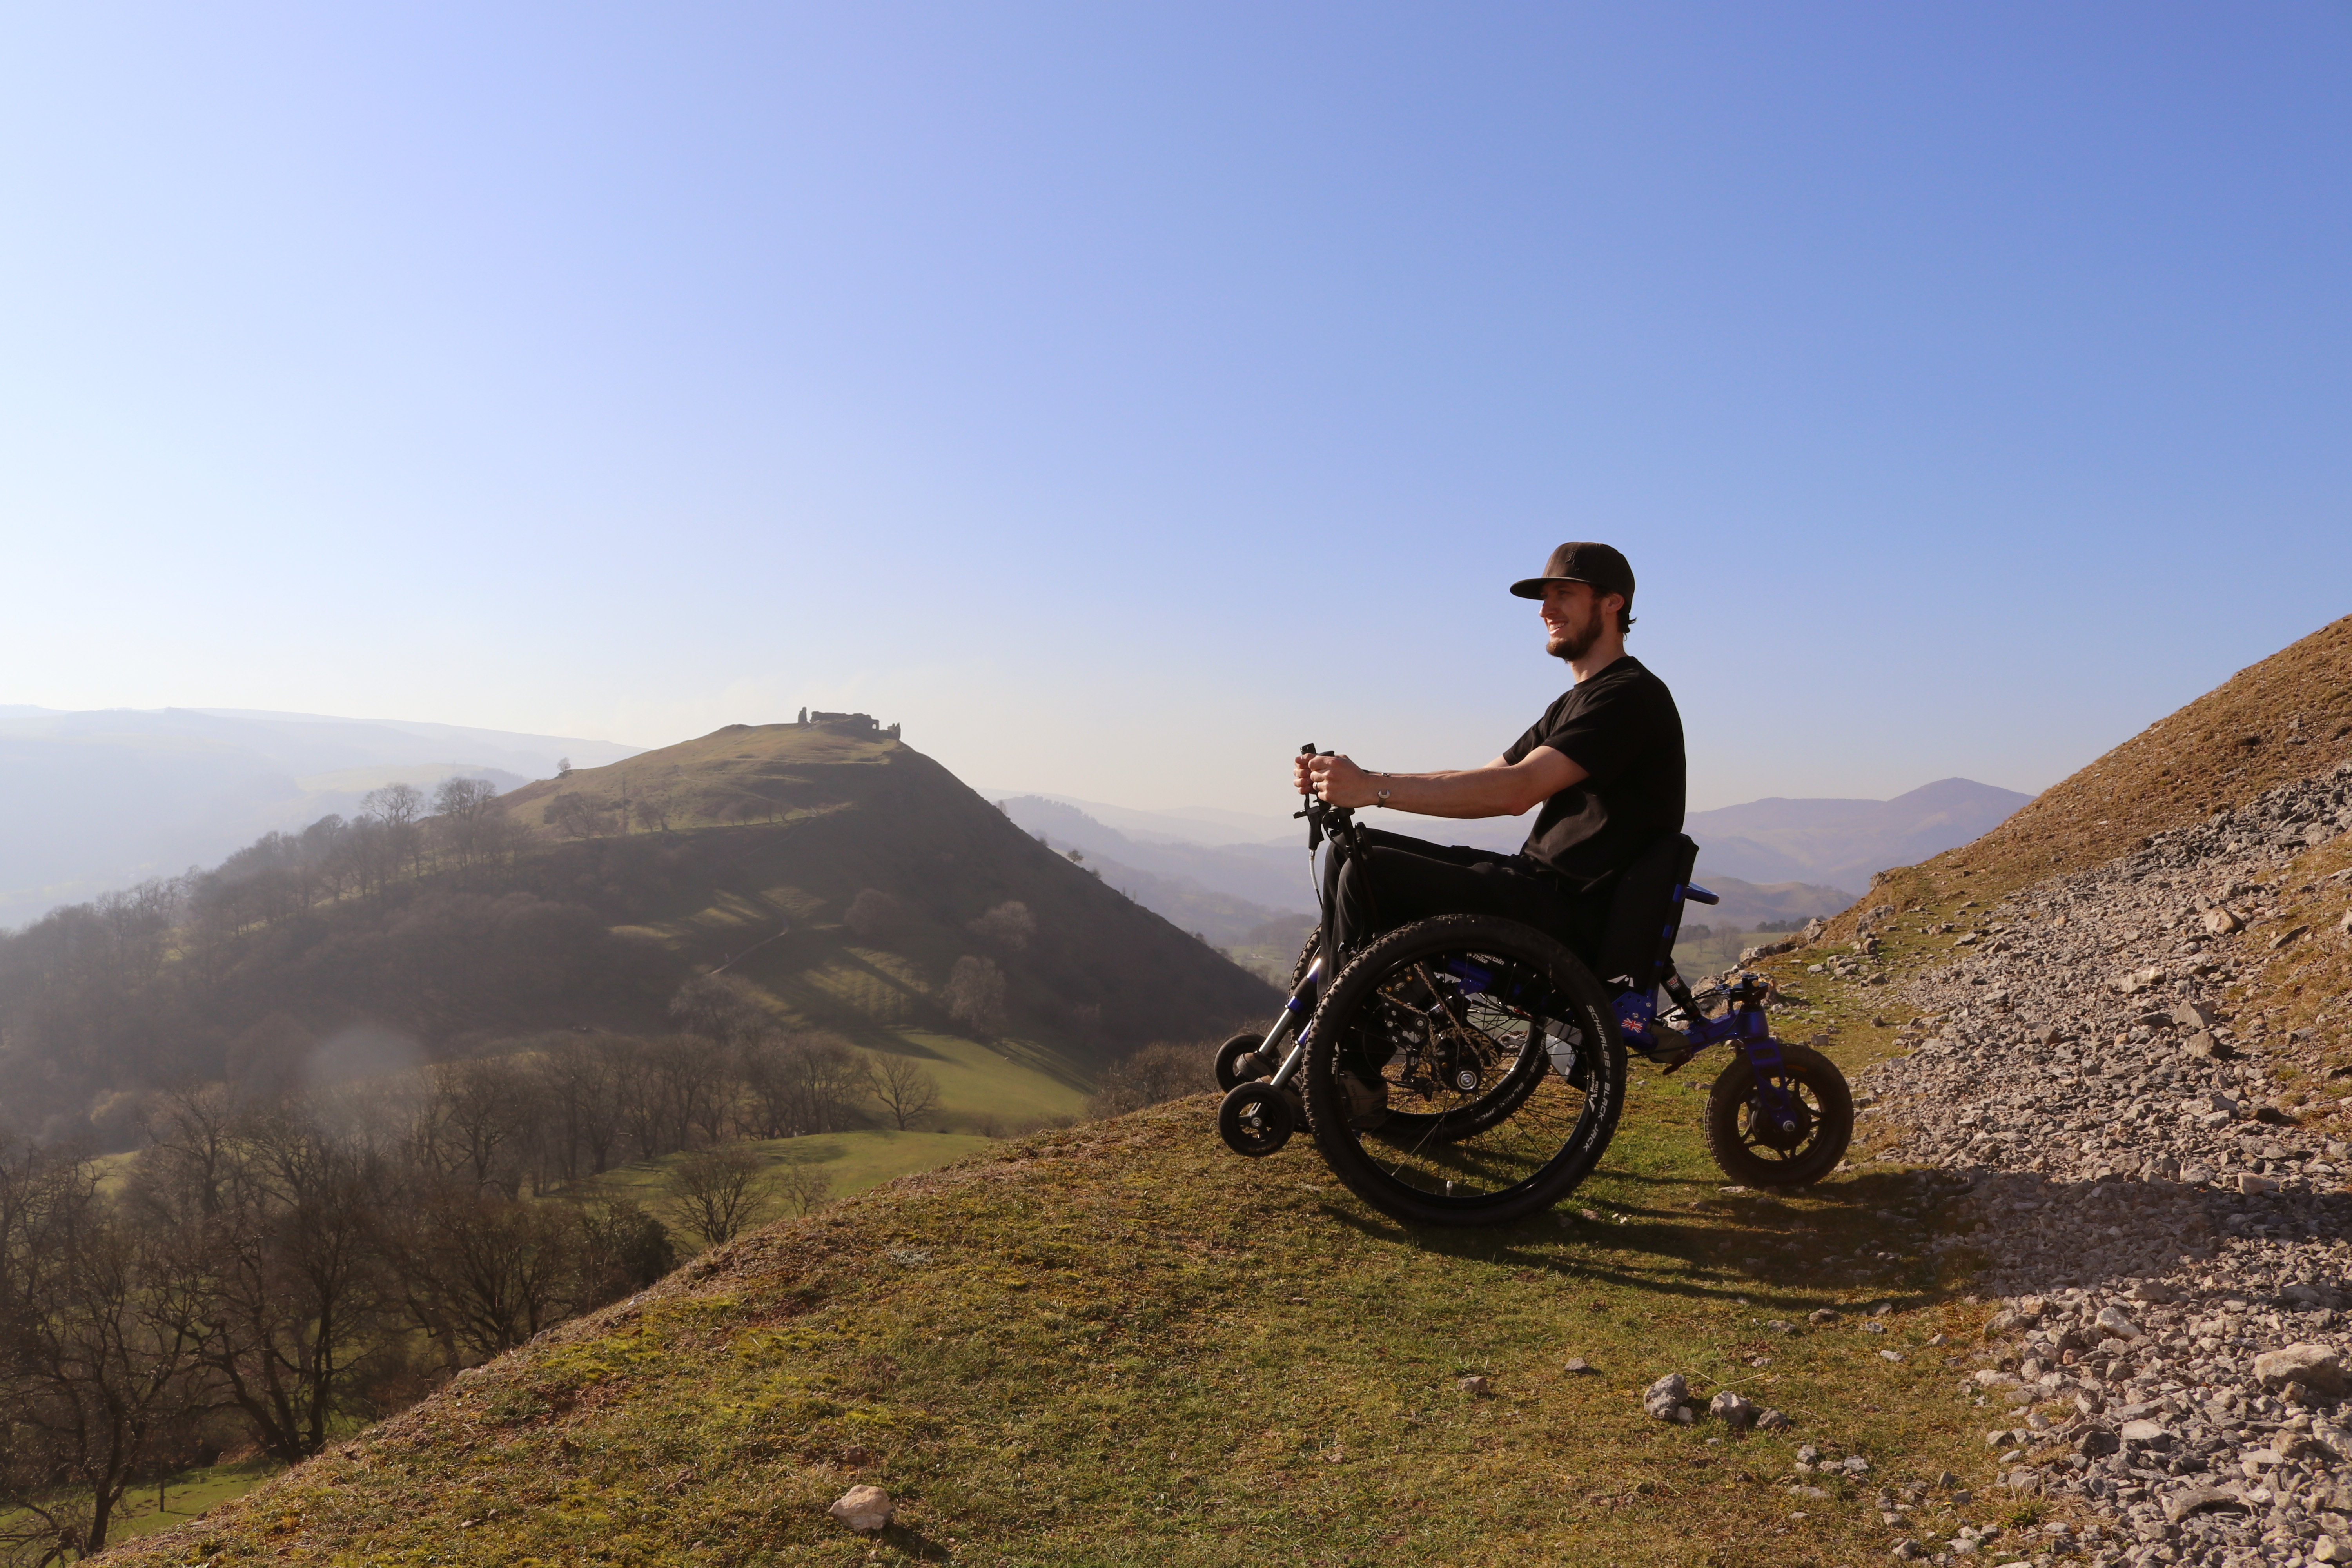 Video: How to ride and product info for the eTrike - electric power assist all terrain wheelchair